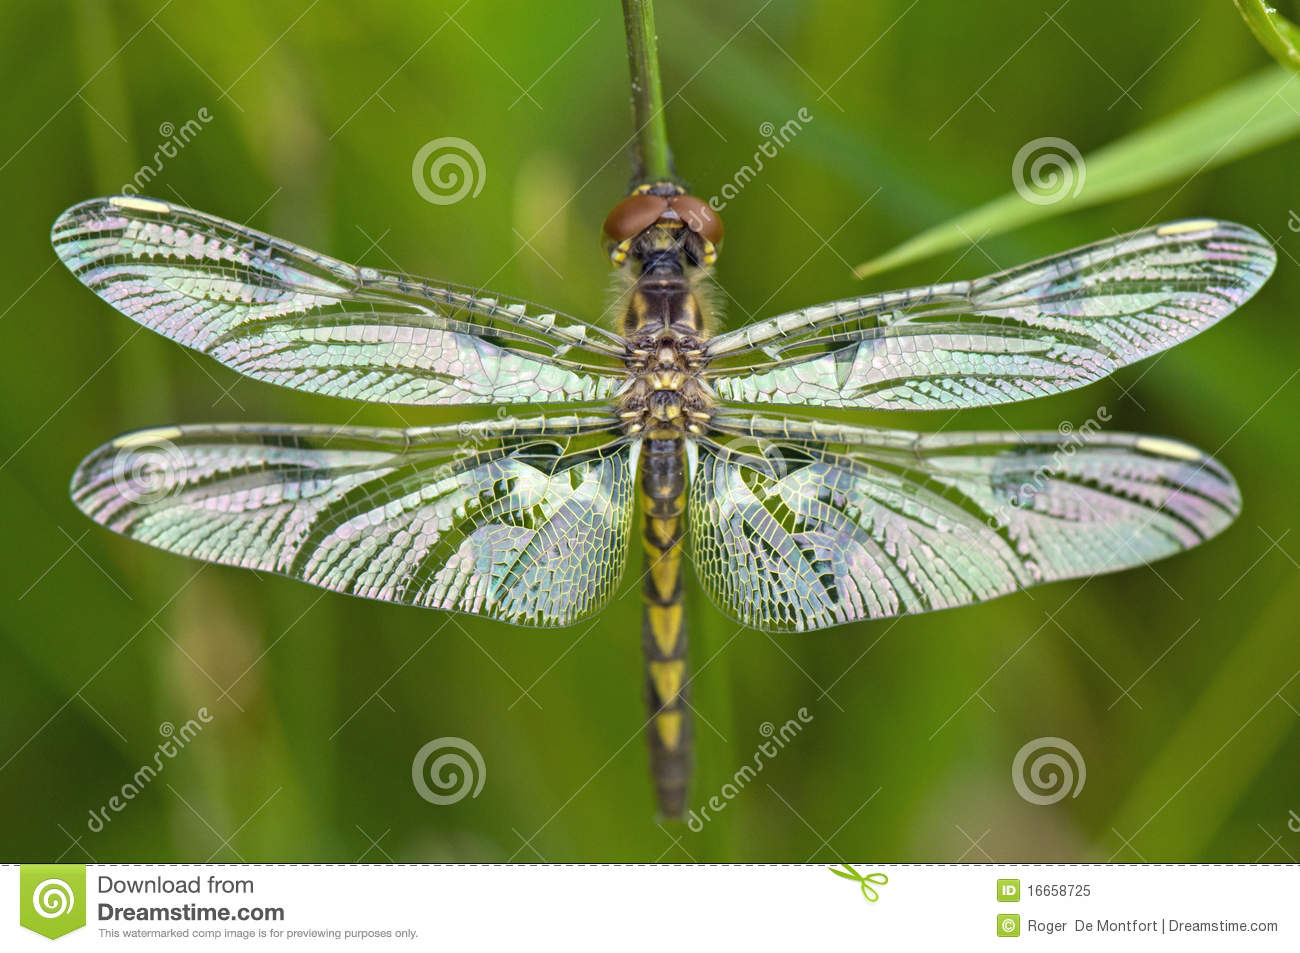 Close up of dragonfly, wings outstretched